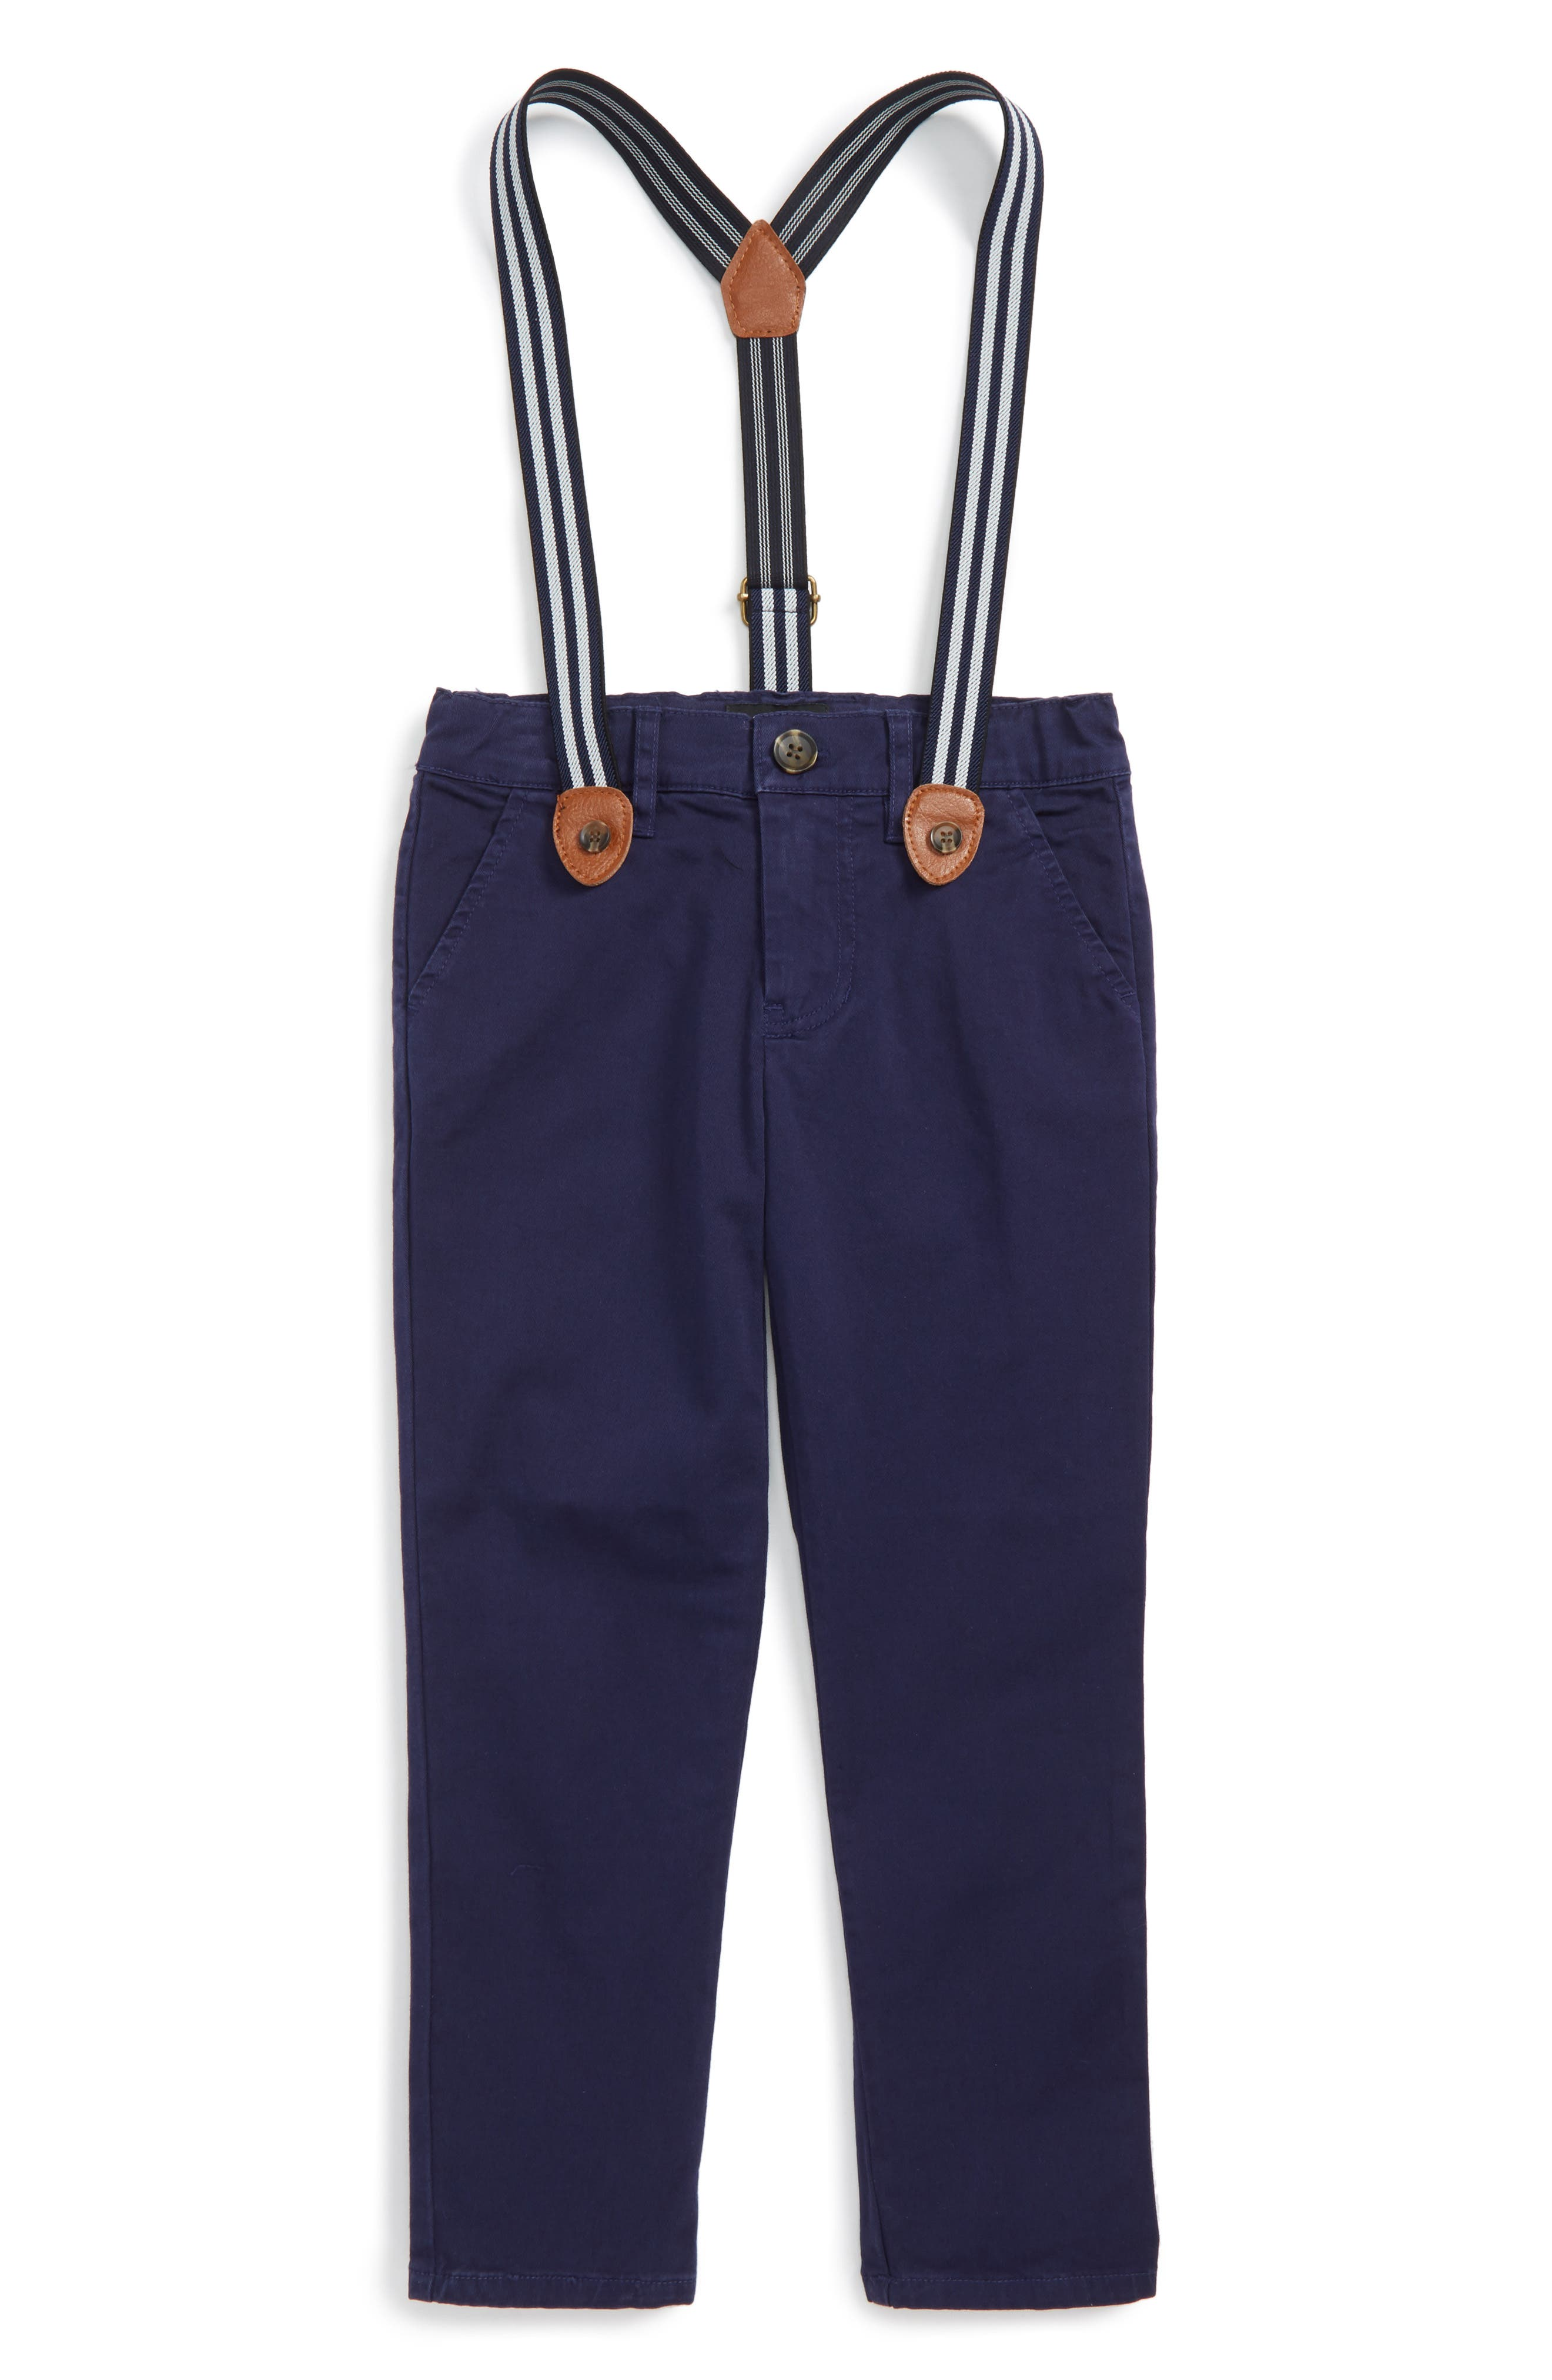 Chinos & Suspenders Set,                         Main,                         color, 409